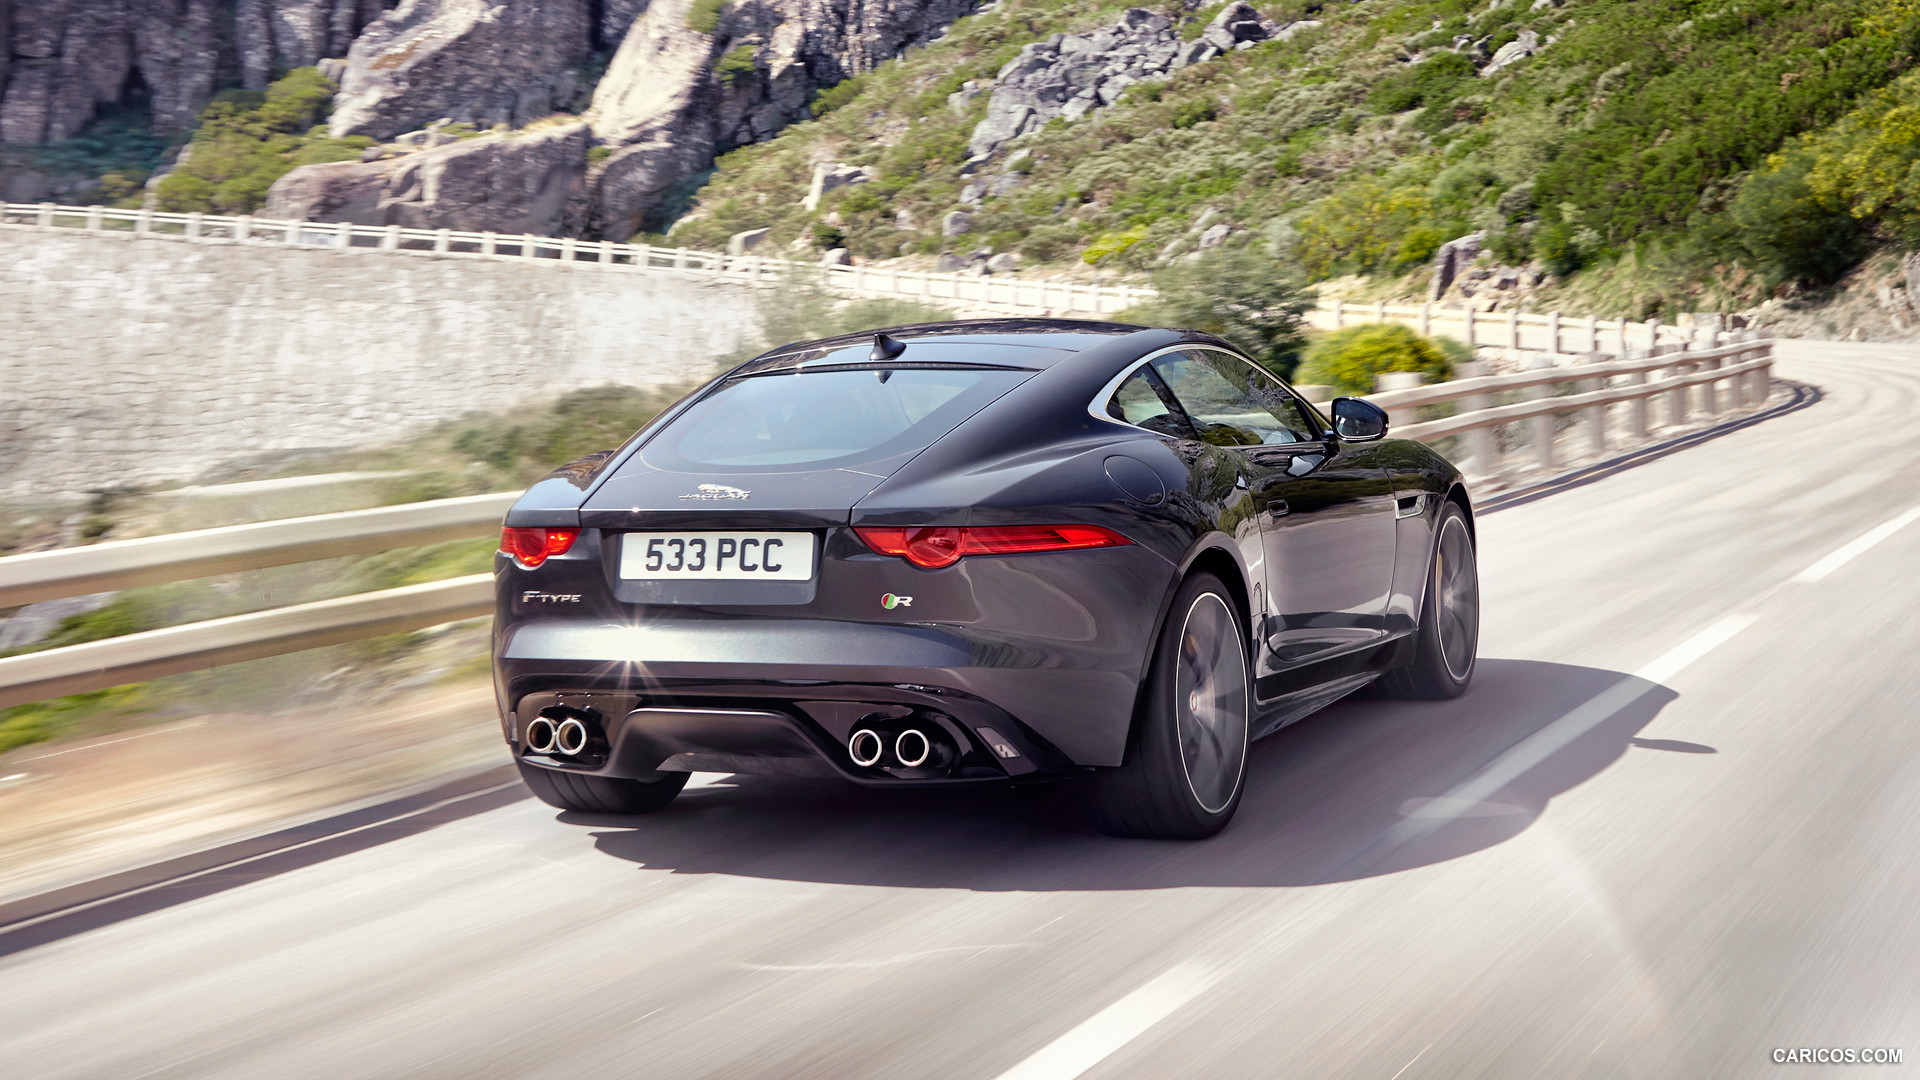 Free Download 2015 Jaguar F Type R Coupe Stratus Grey Rear Hd